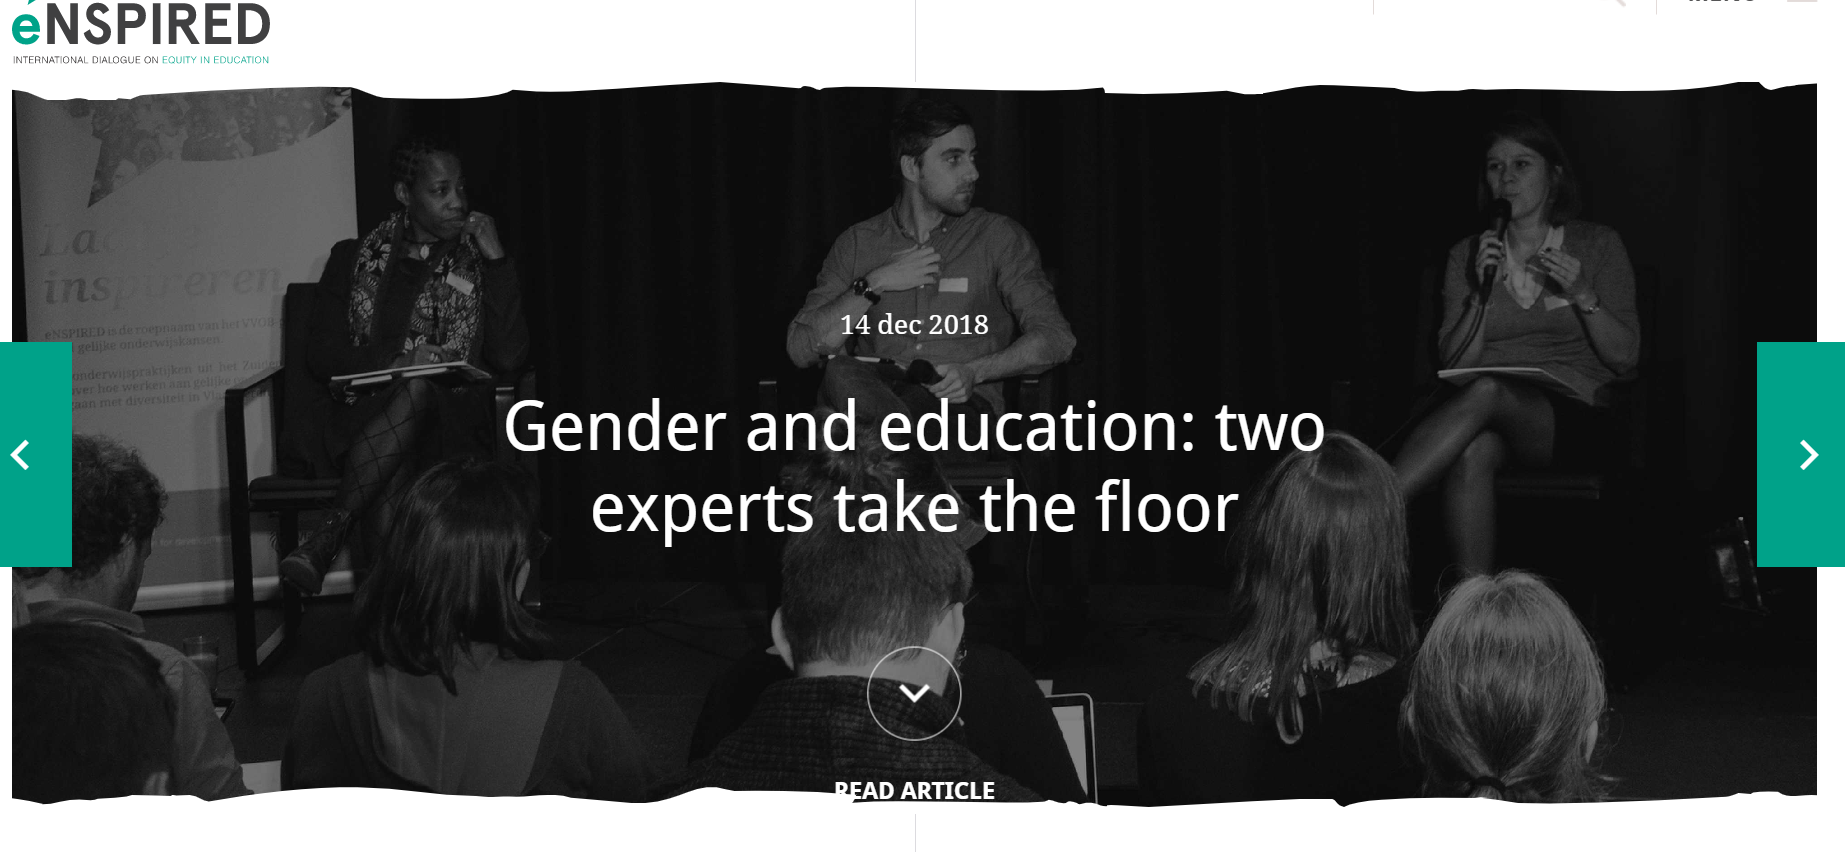 Gender and education: two experts take the floor